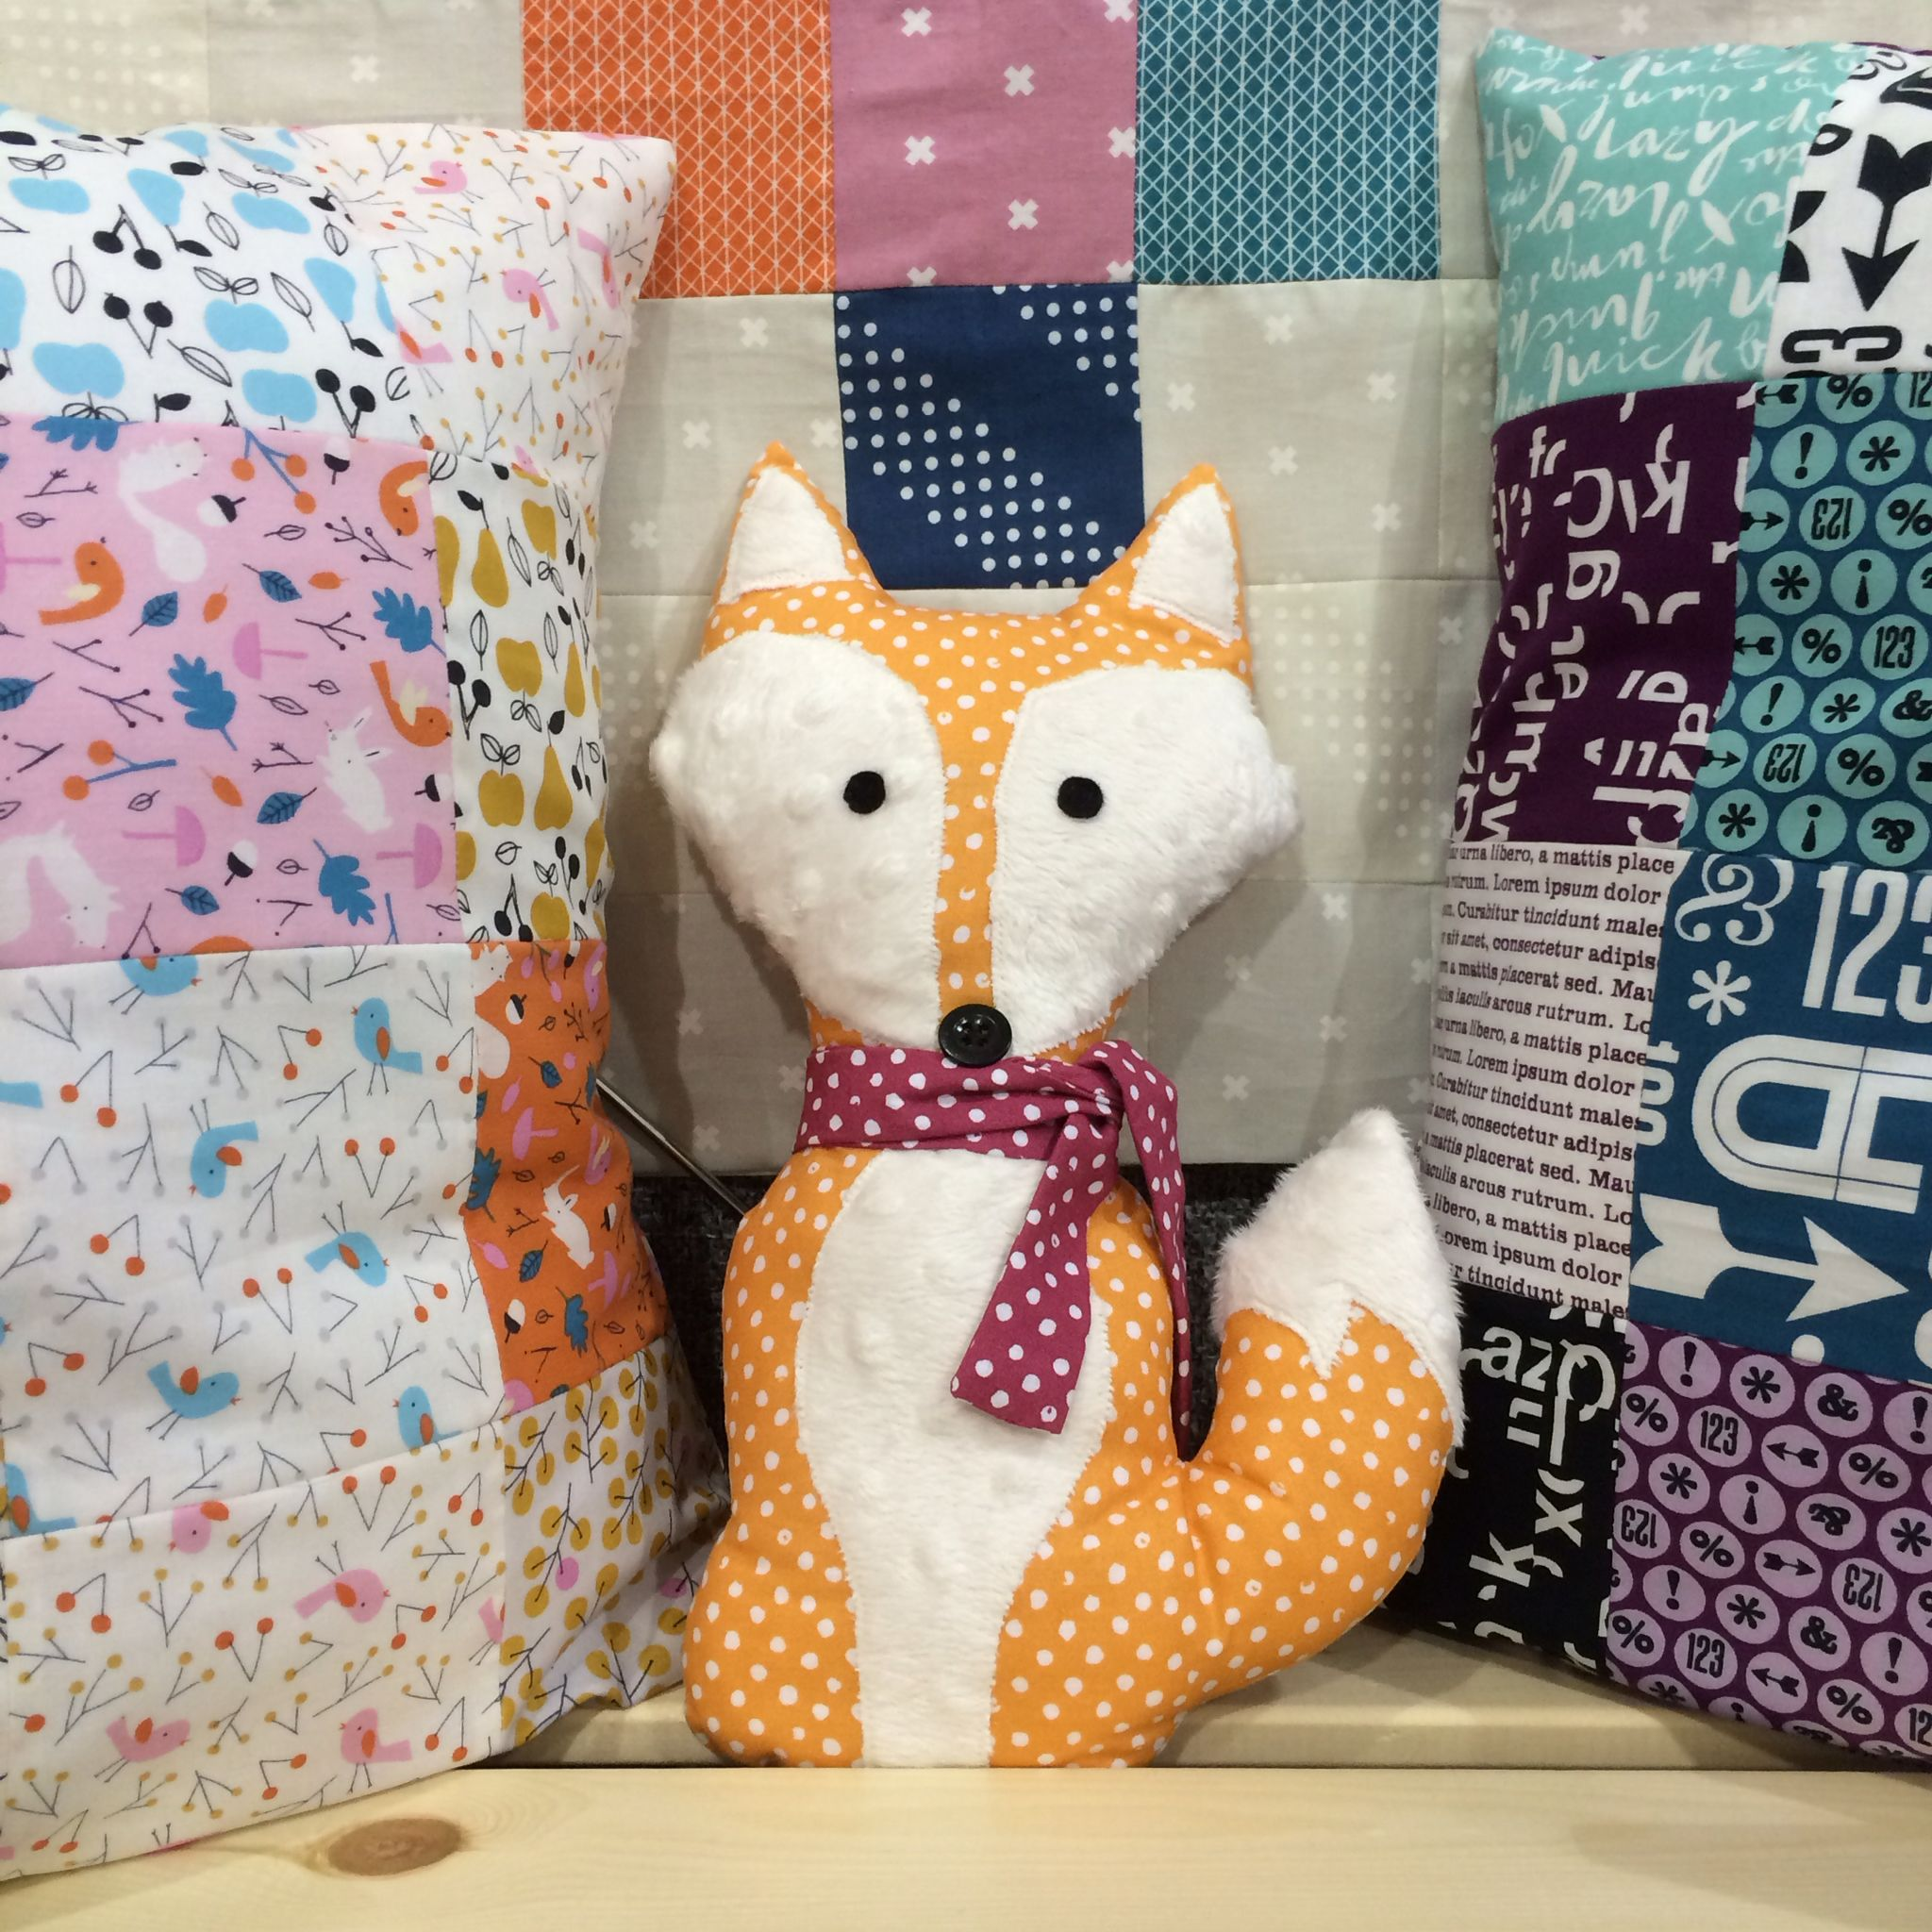 The hardest working fox we know- The Fabric Fox!